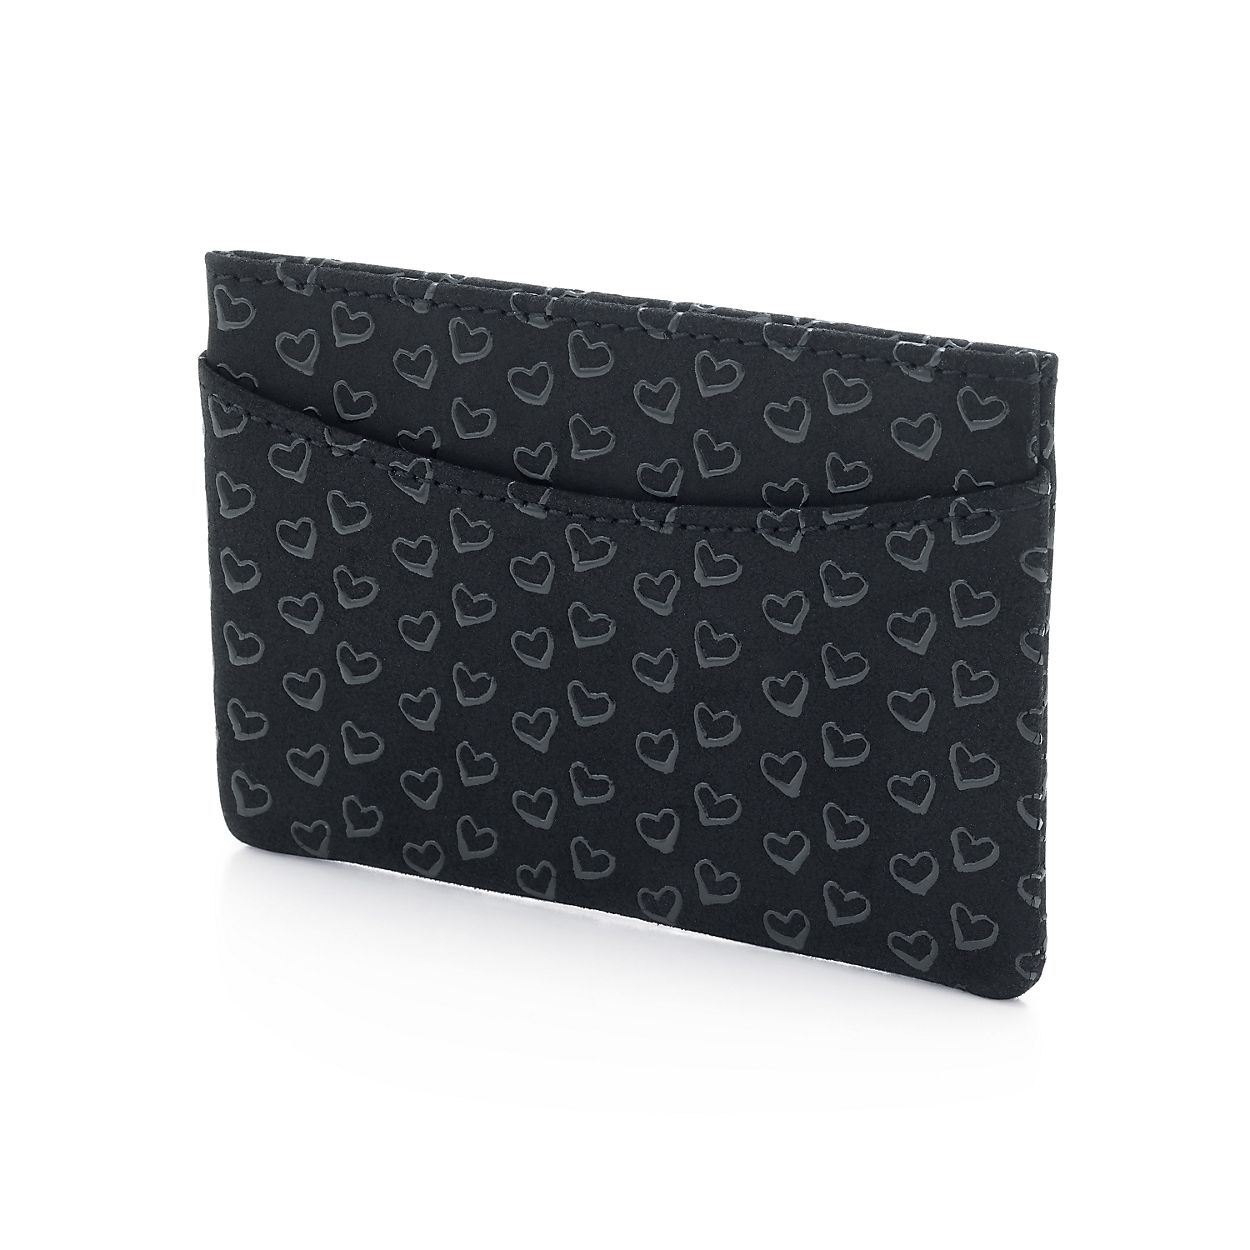 Elsa Peretti card case in black leather with lacquered Open Hearts Tiffany & Co. pZCzme7